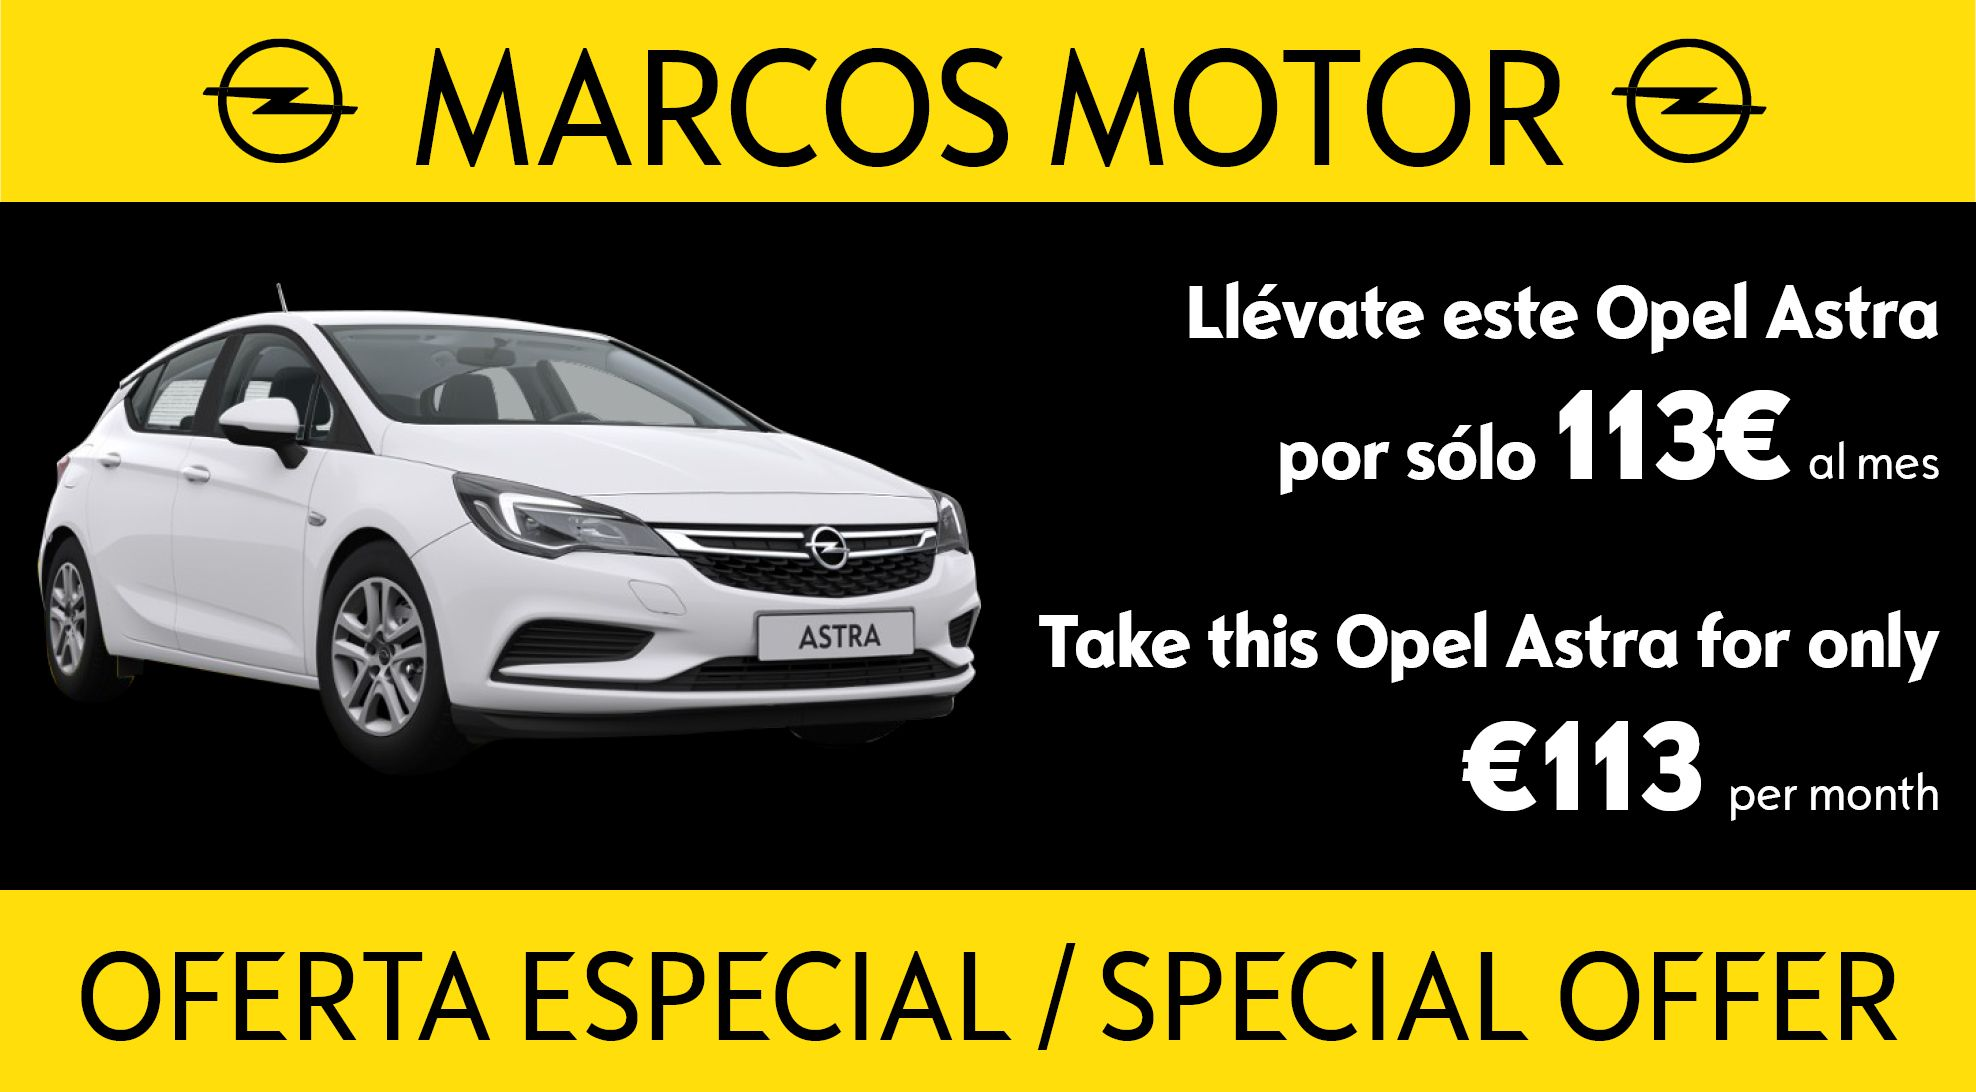 Opel Astra Offer €113 per month